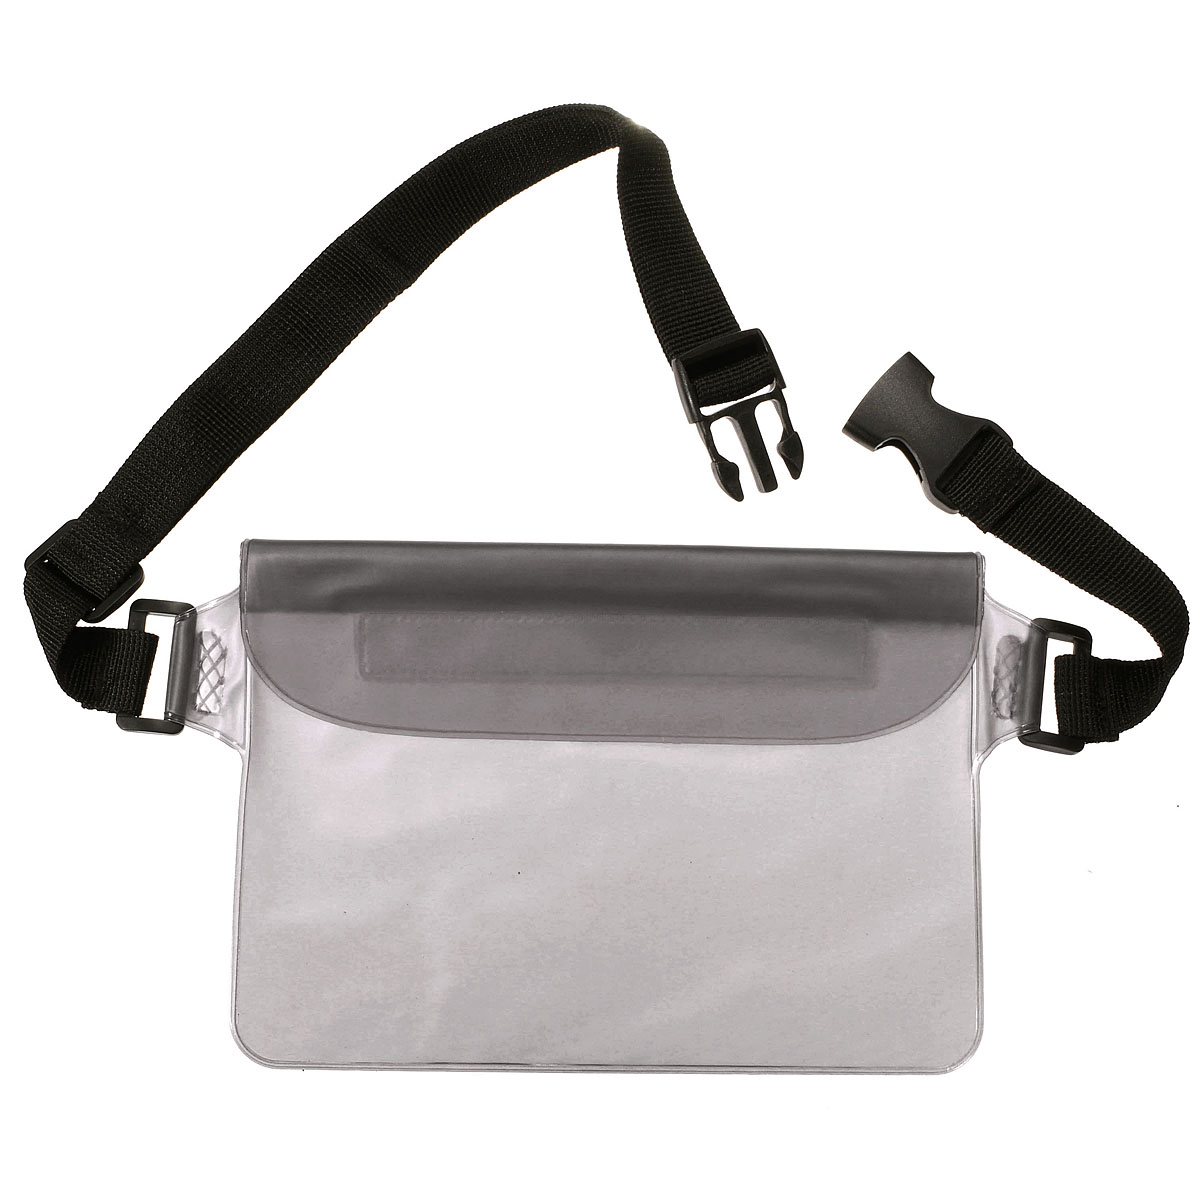 Waterproof Waist Bag Pack Dry Swimming Boating Sport Beach Pouch For Cell Phone